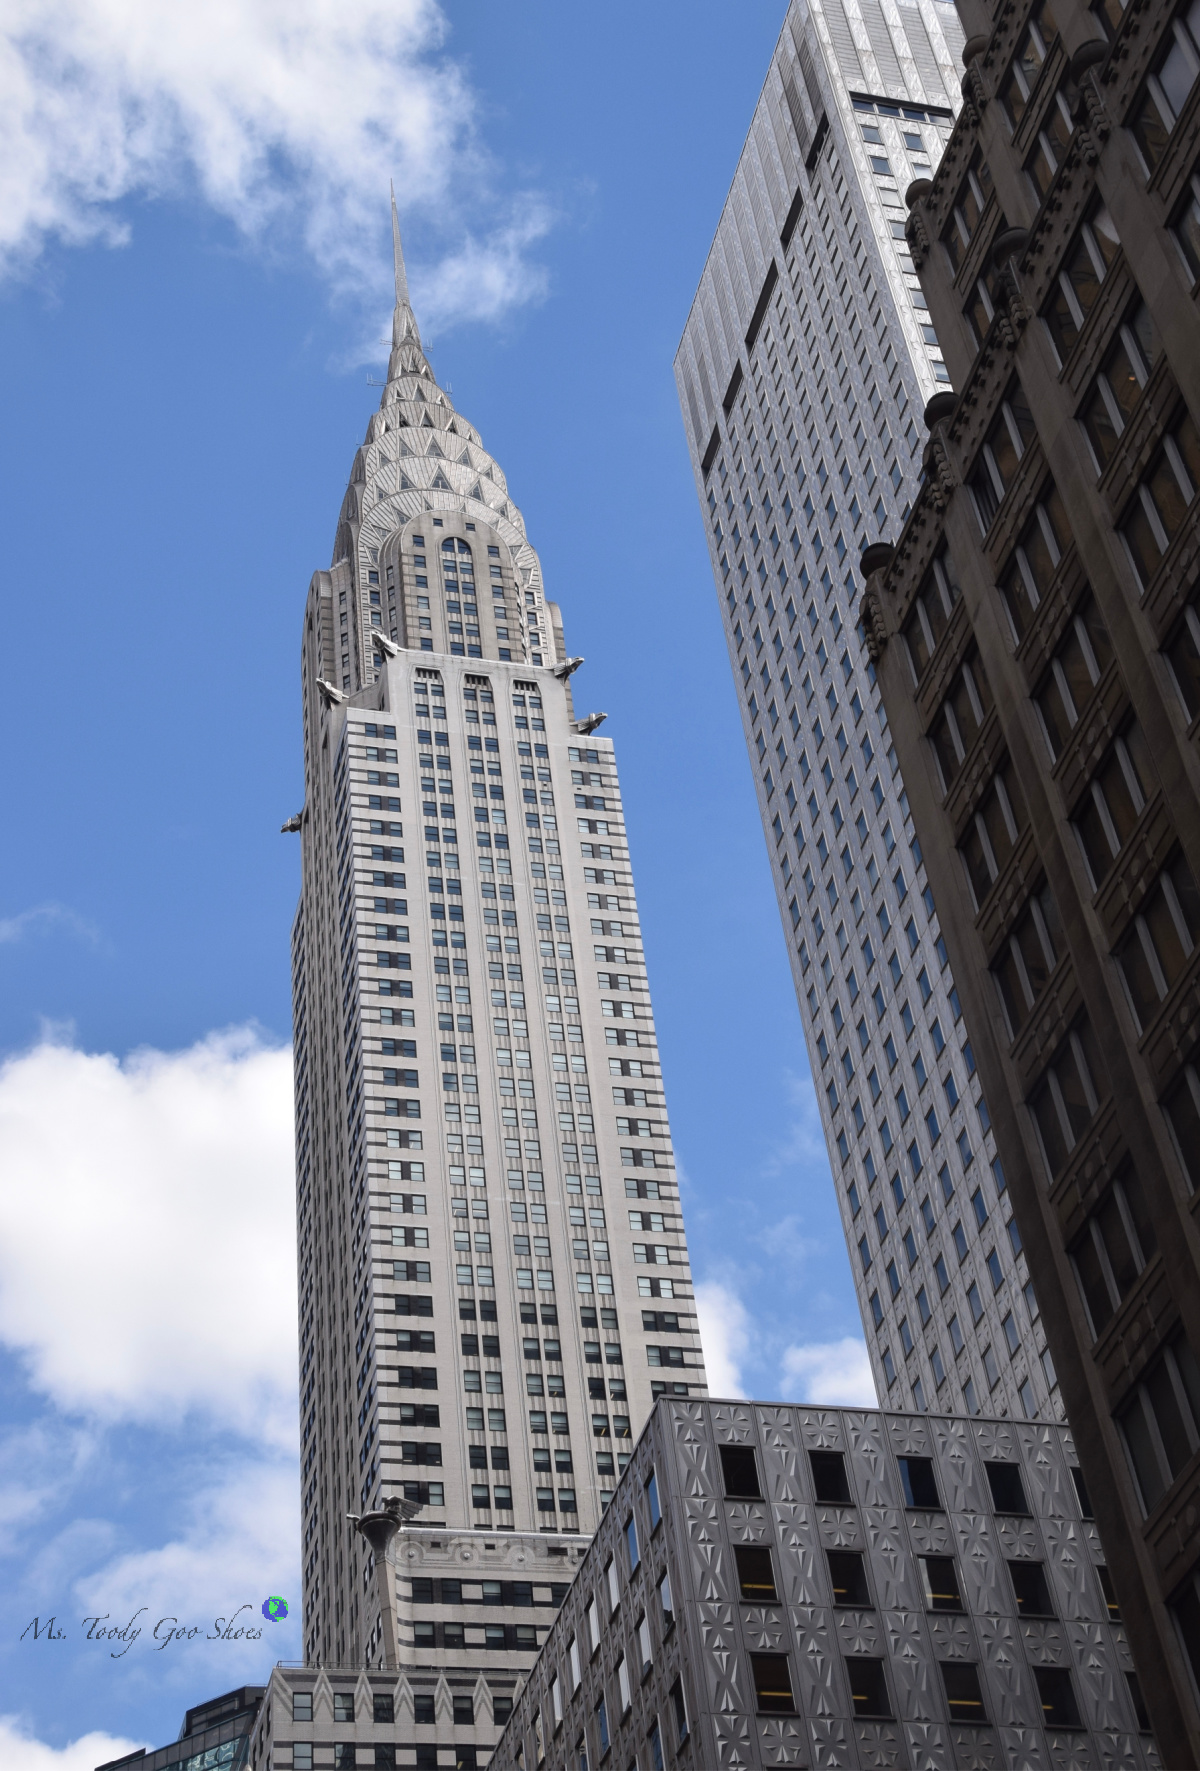 Chrysler Building NYC | Ms. Toody Goo Shoes